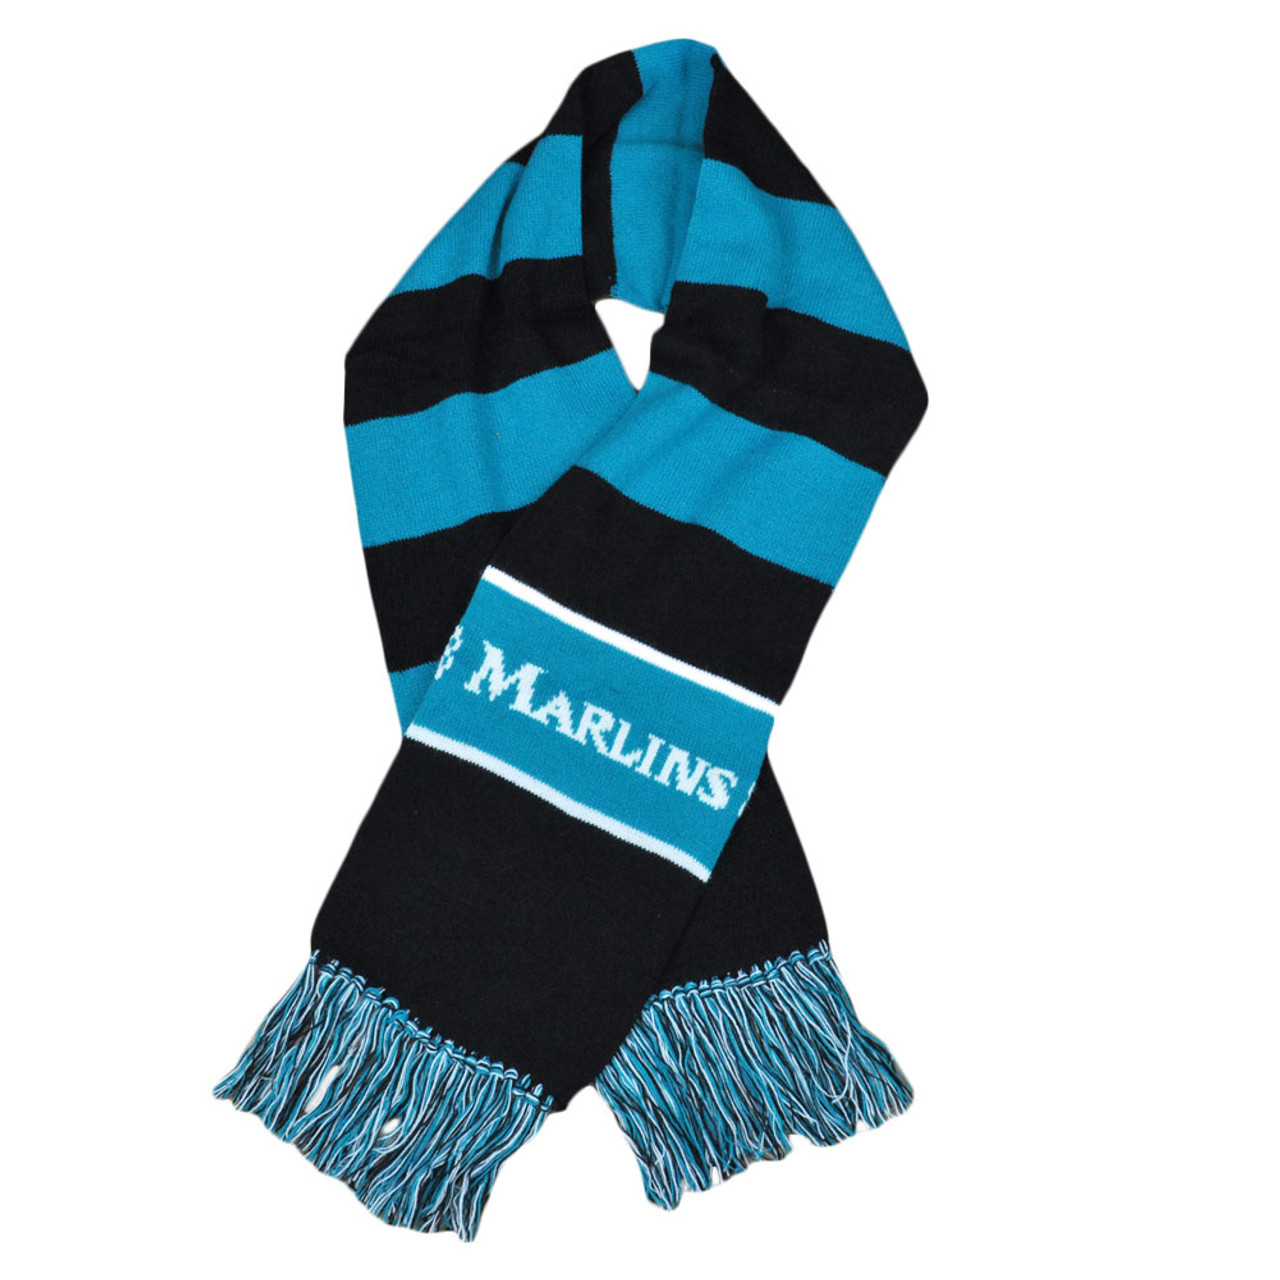 best service 65119 f85ff MLB Florida Miami Marlins Striped Knitted Team Scarf Winter Acrylic Gear  Black